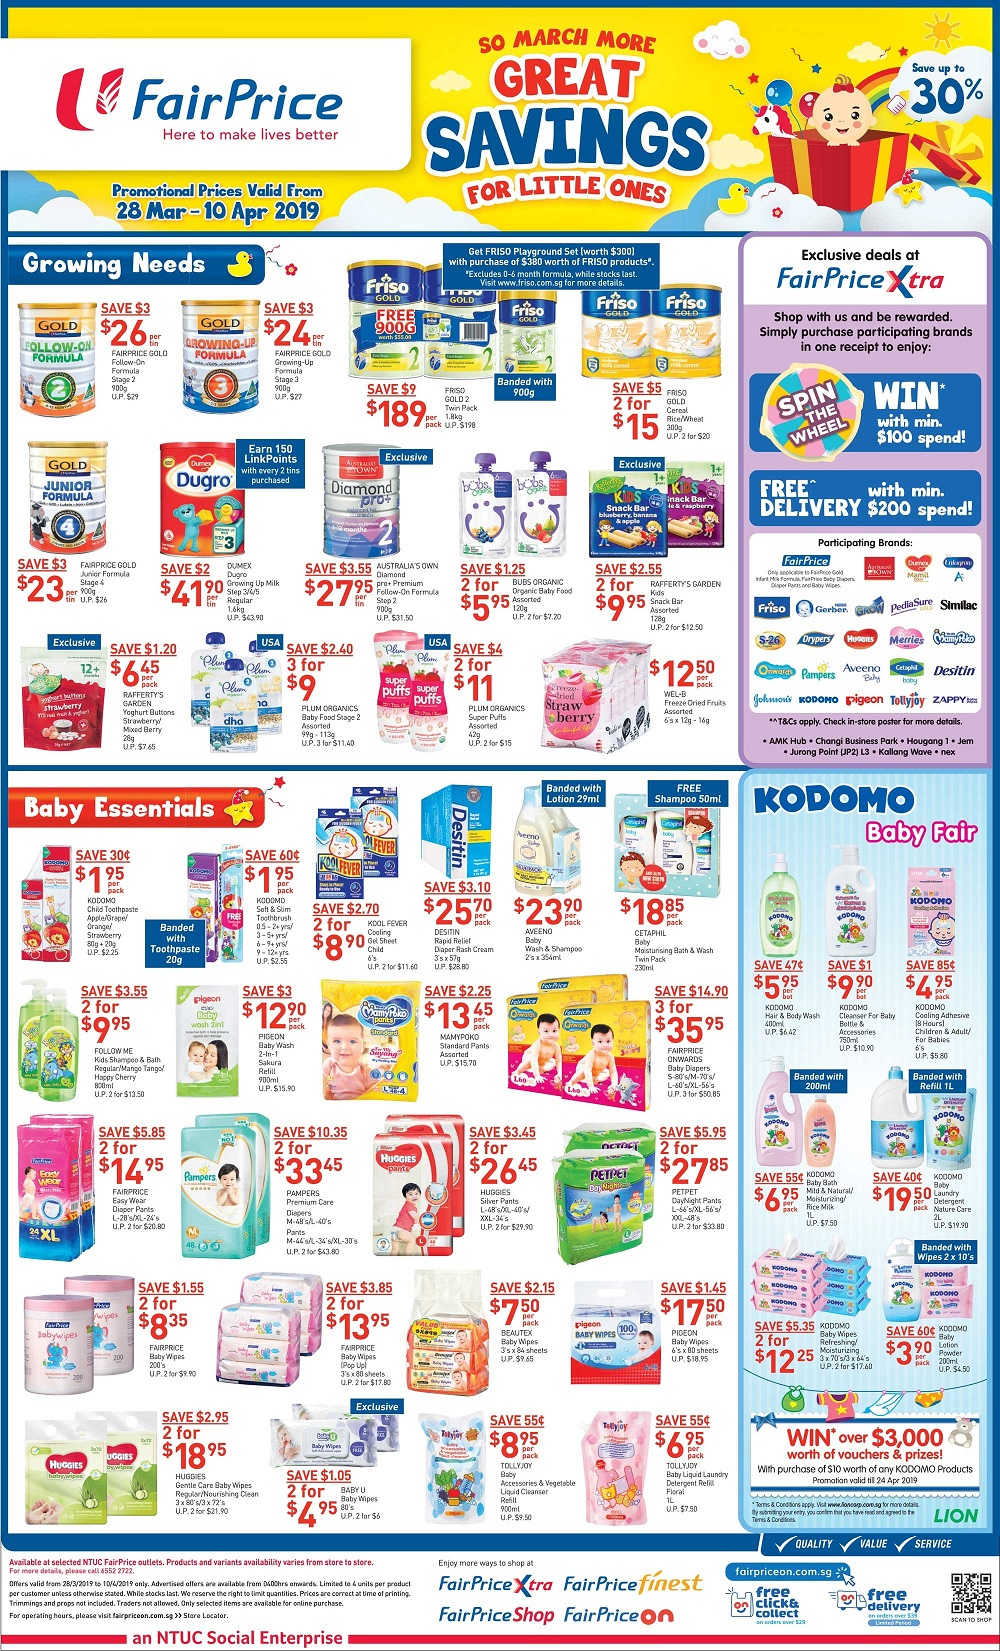 toys promotion in Singapore,lego,fisher price,block,toys car,cartoon,disney